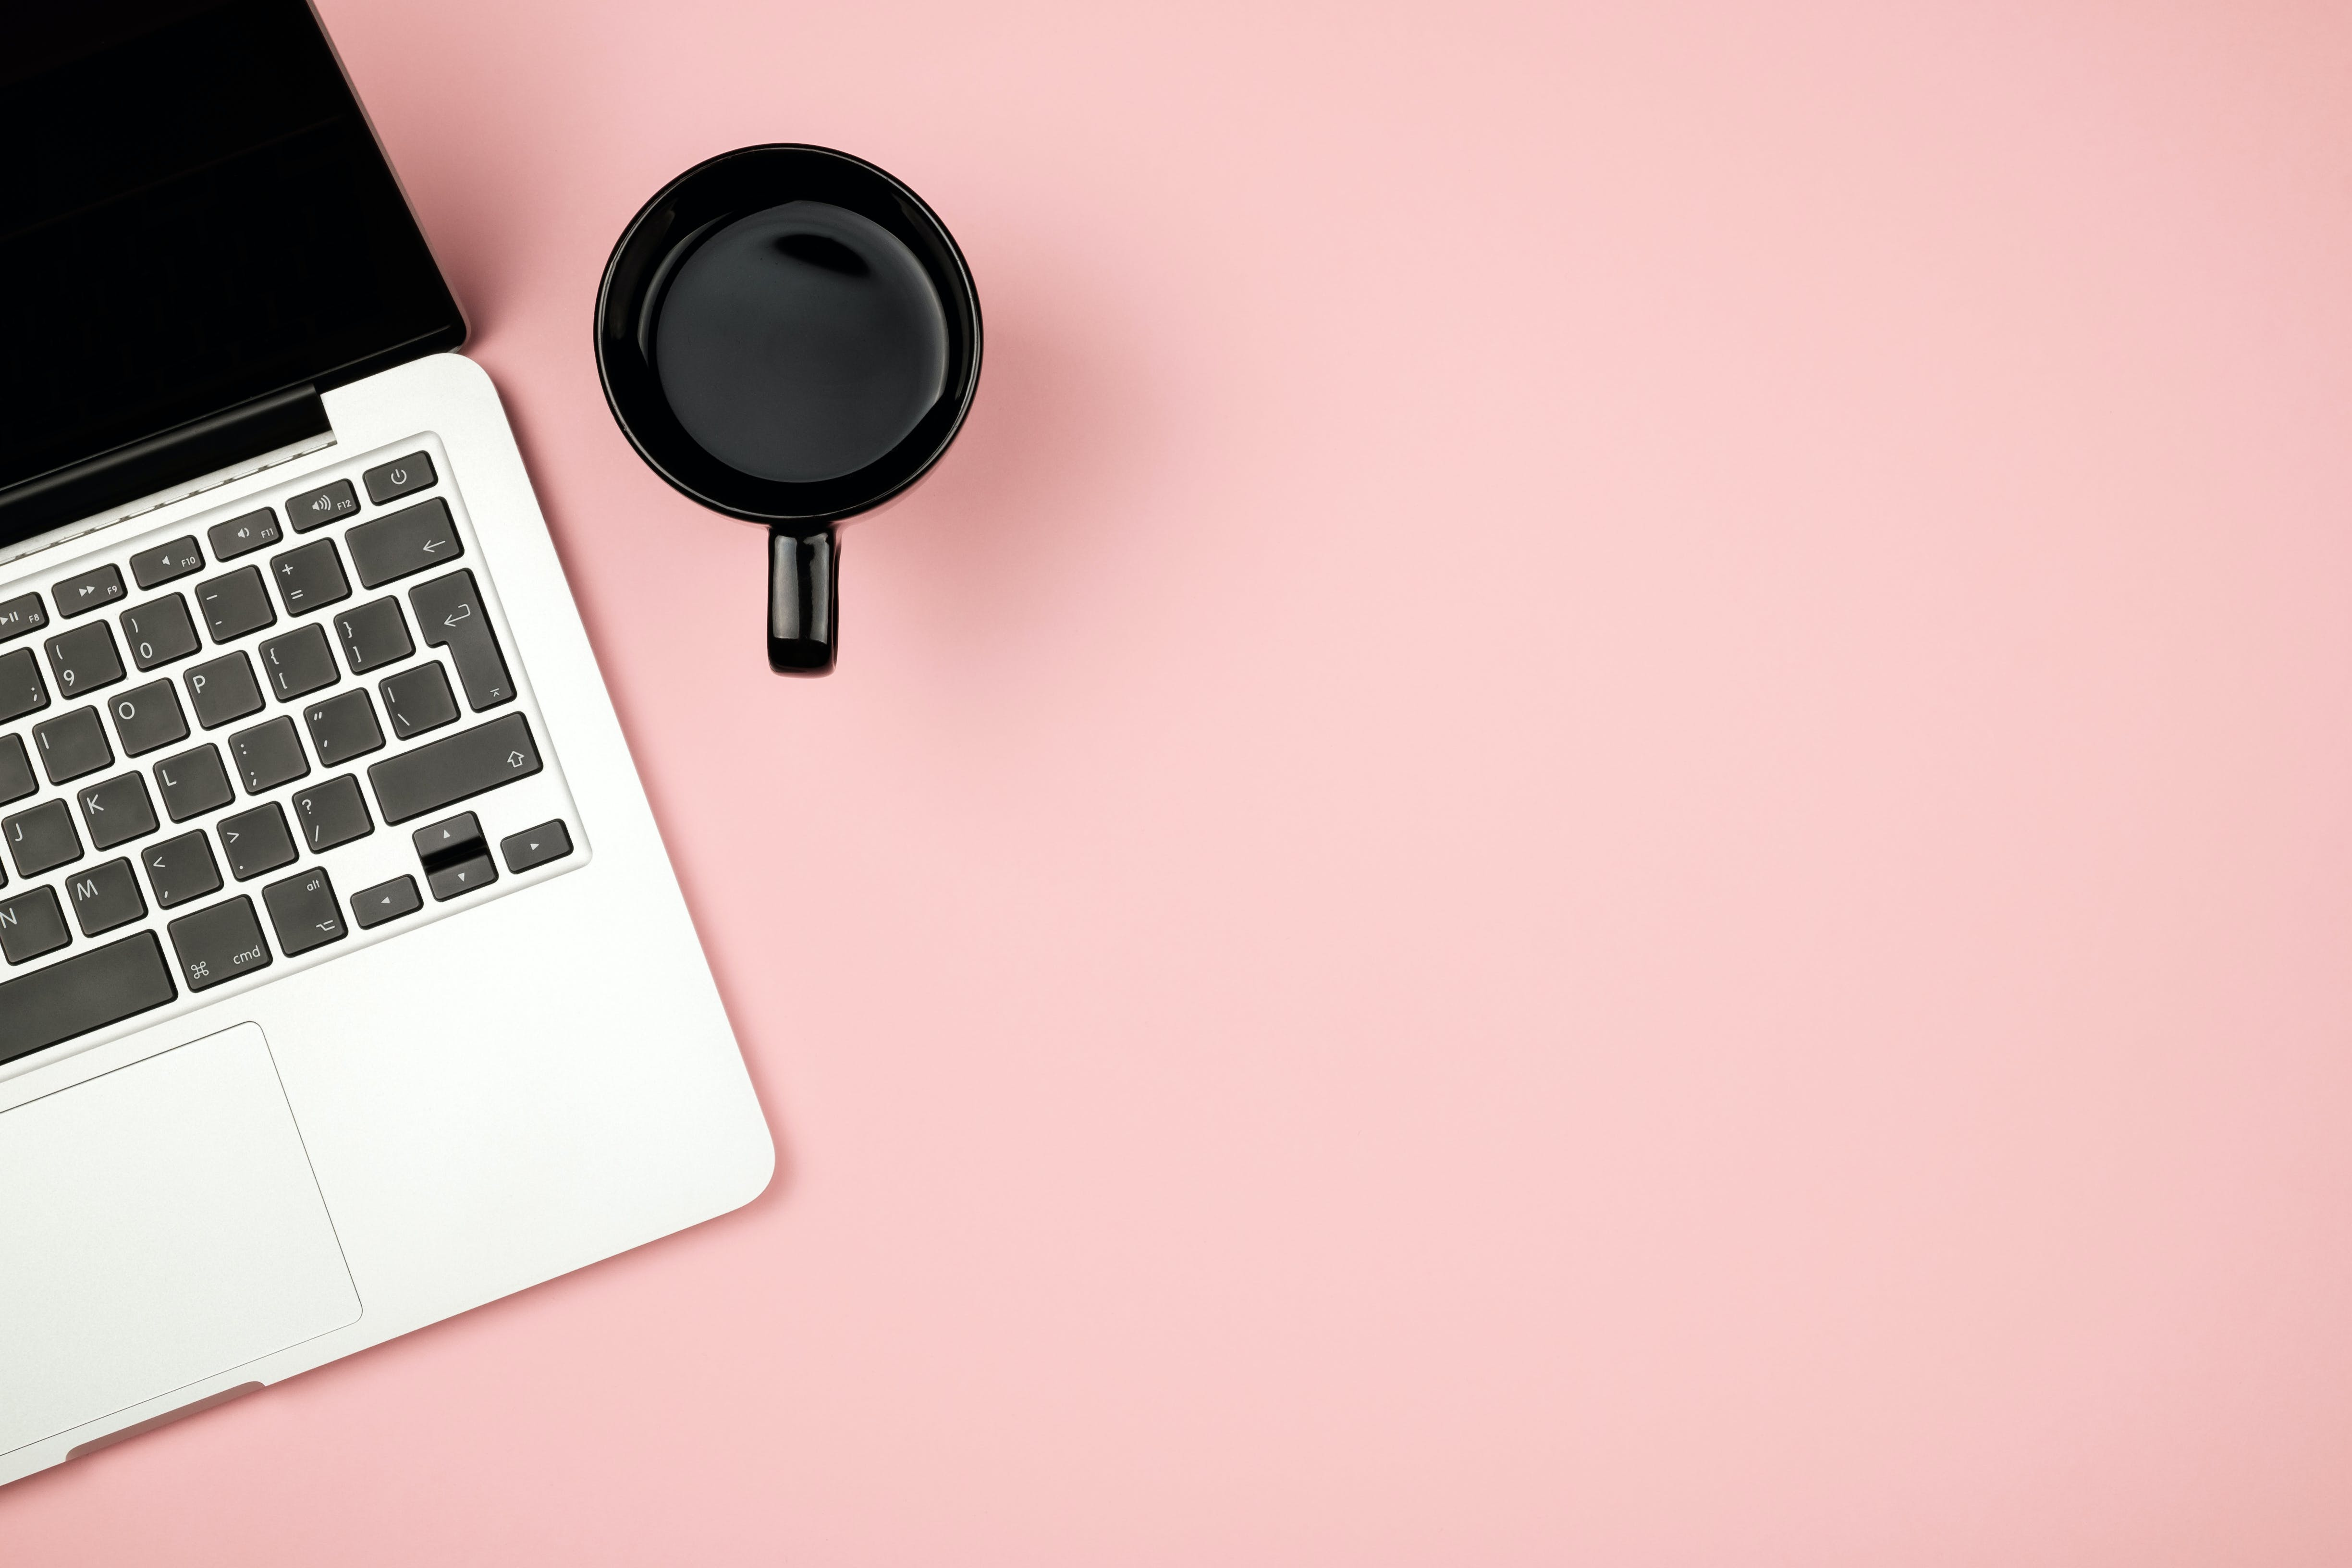 overhead photo of a laptop and coffee mug on a pink surface